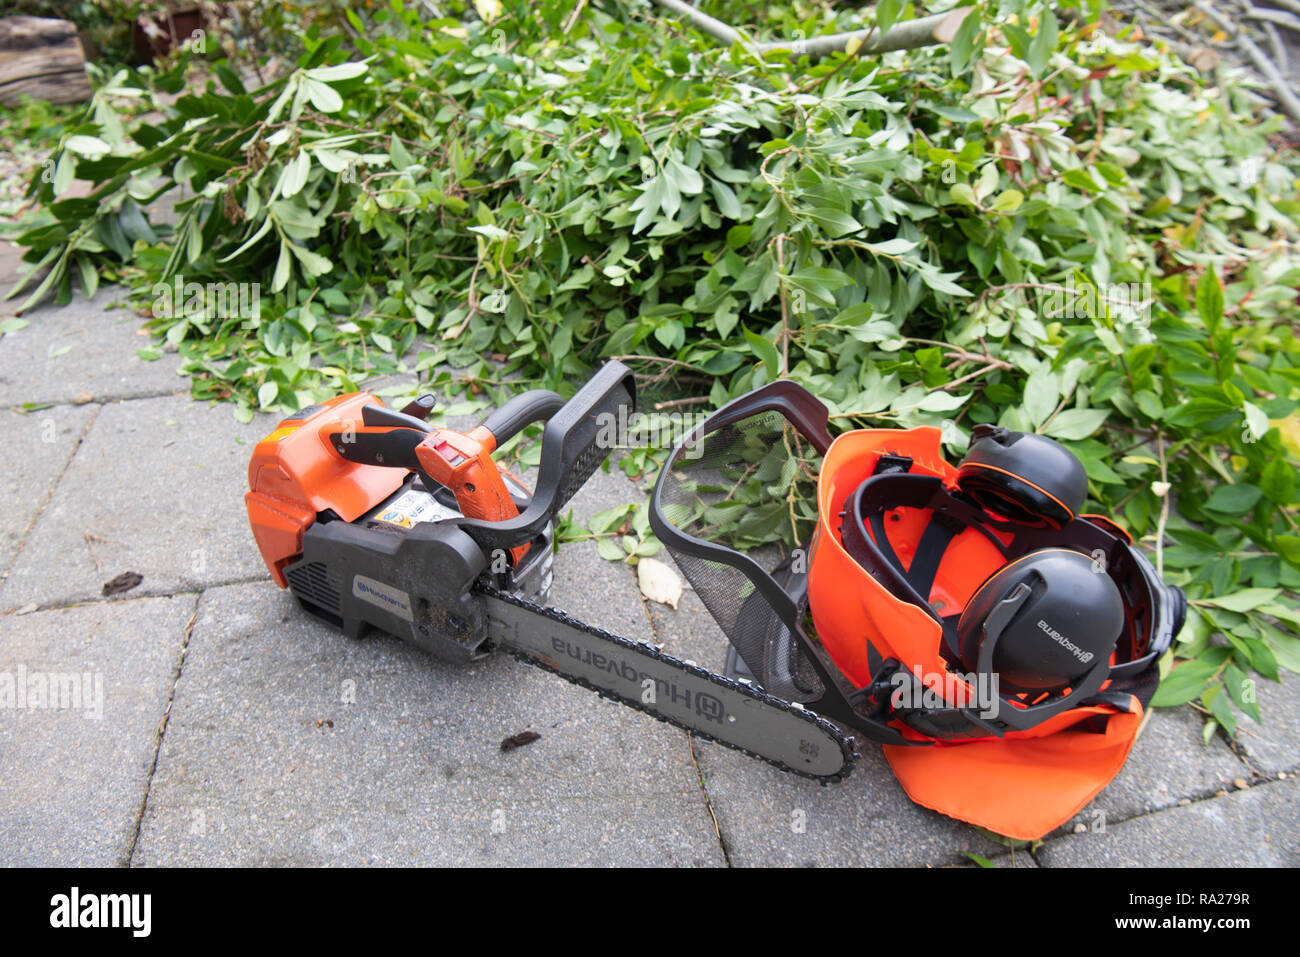 Husqvarna chainsaw and helmet with ear defenders lying on a patio beside branches which have just been cut down. - Stock Image